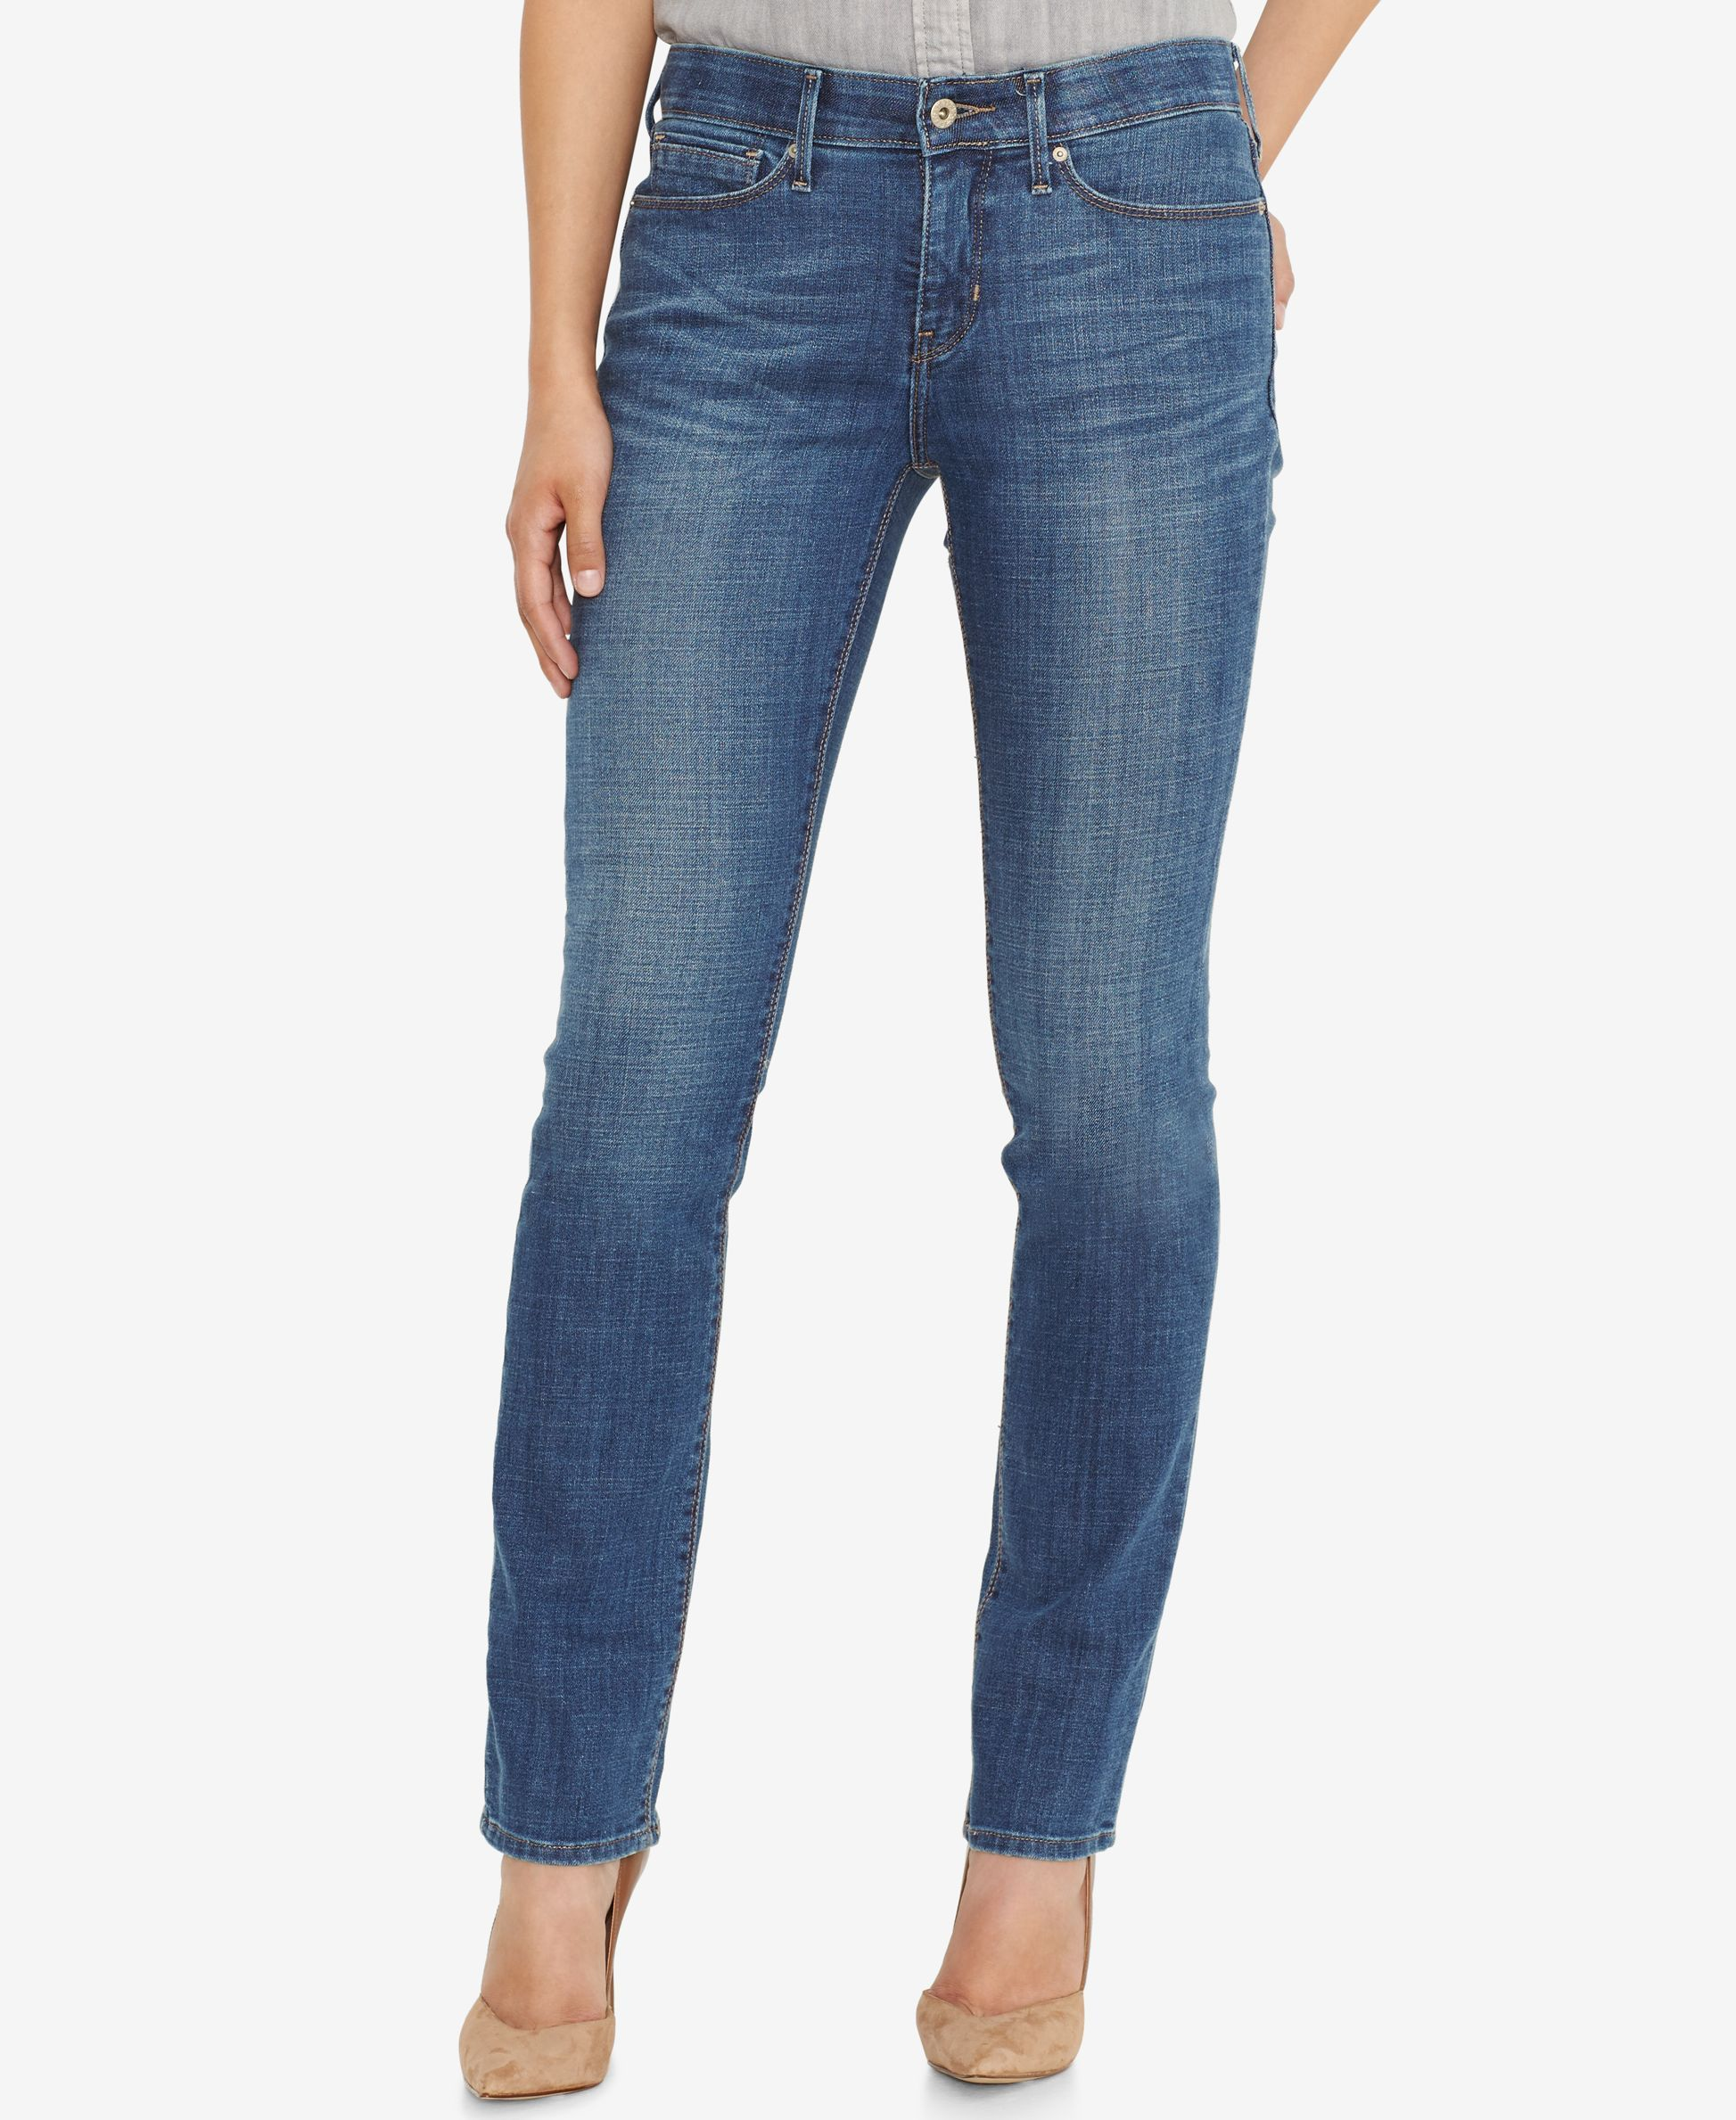 Levi Jeans For Womens Petite